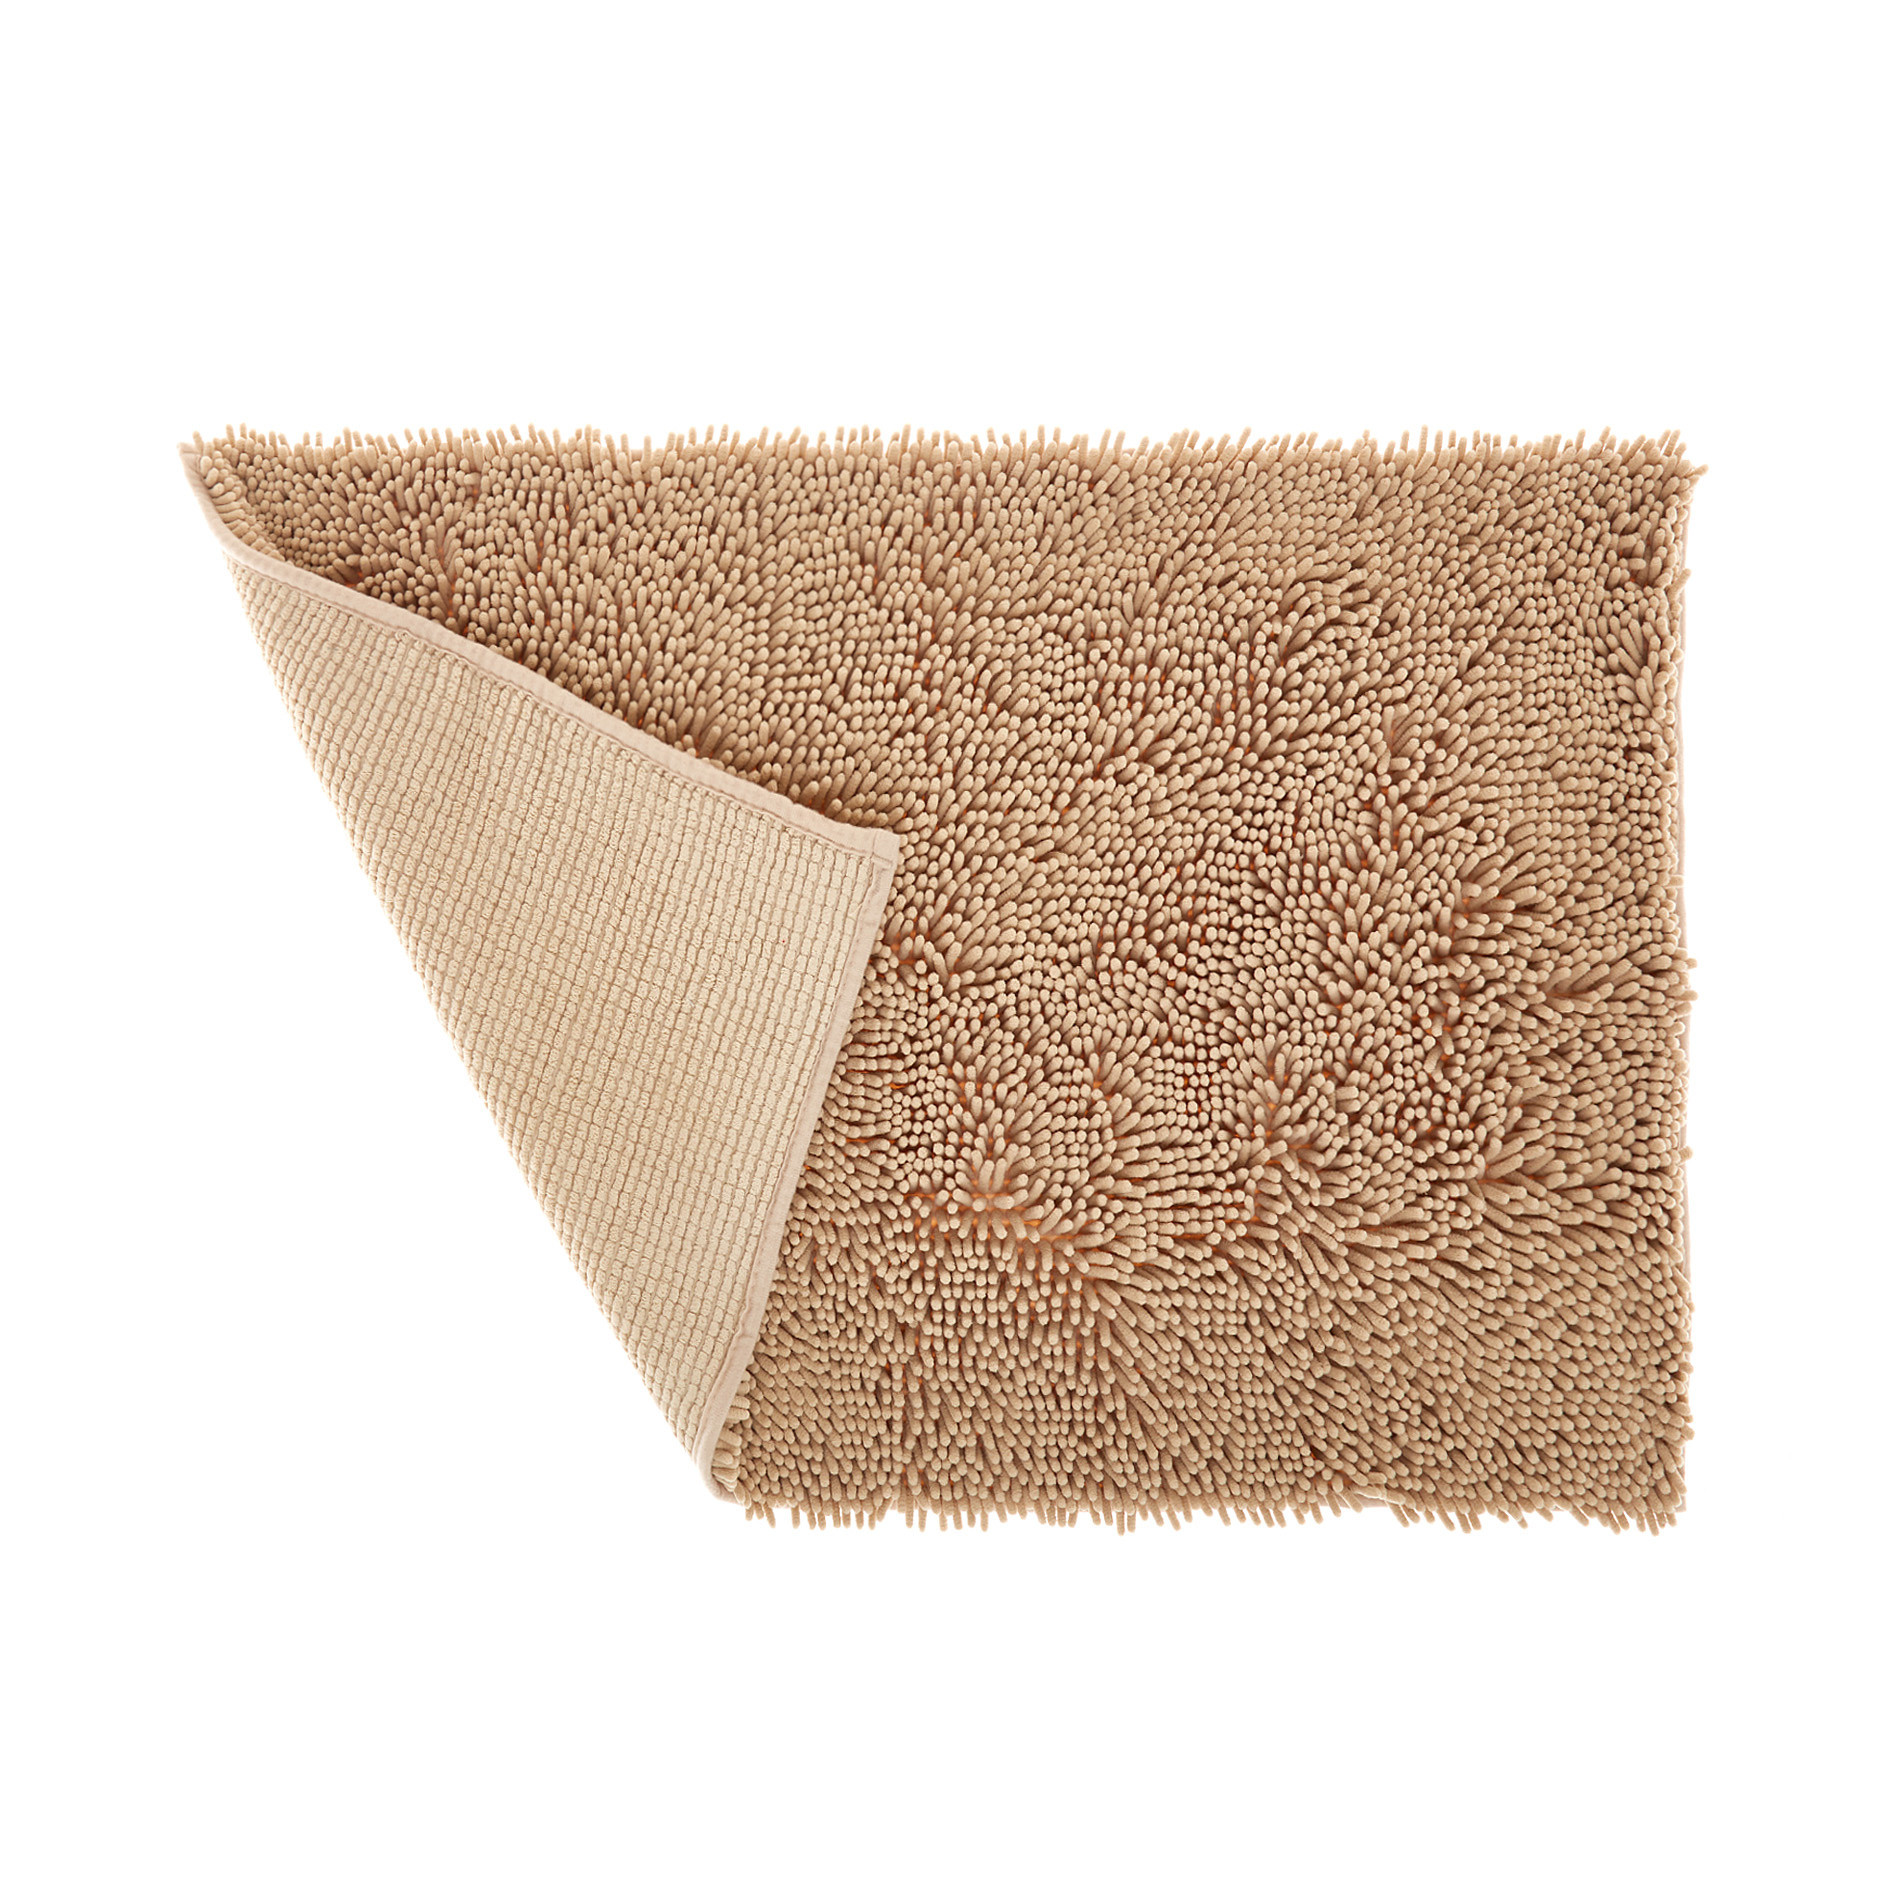 Tappeto bagno microfibra shaggy, Beige, large image number 1